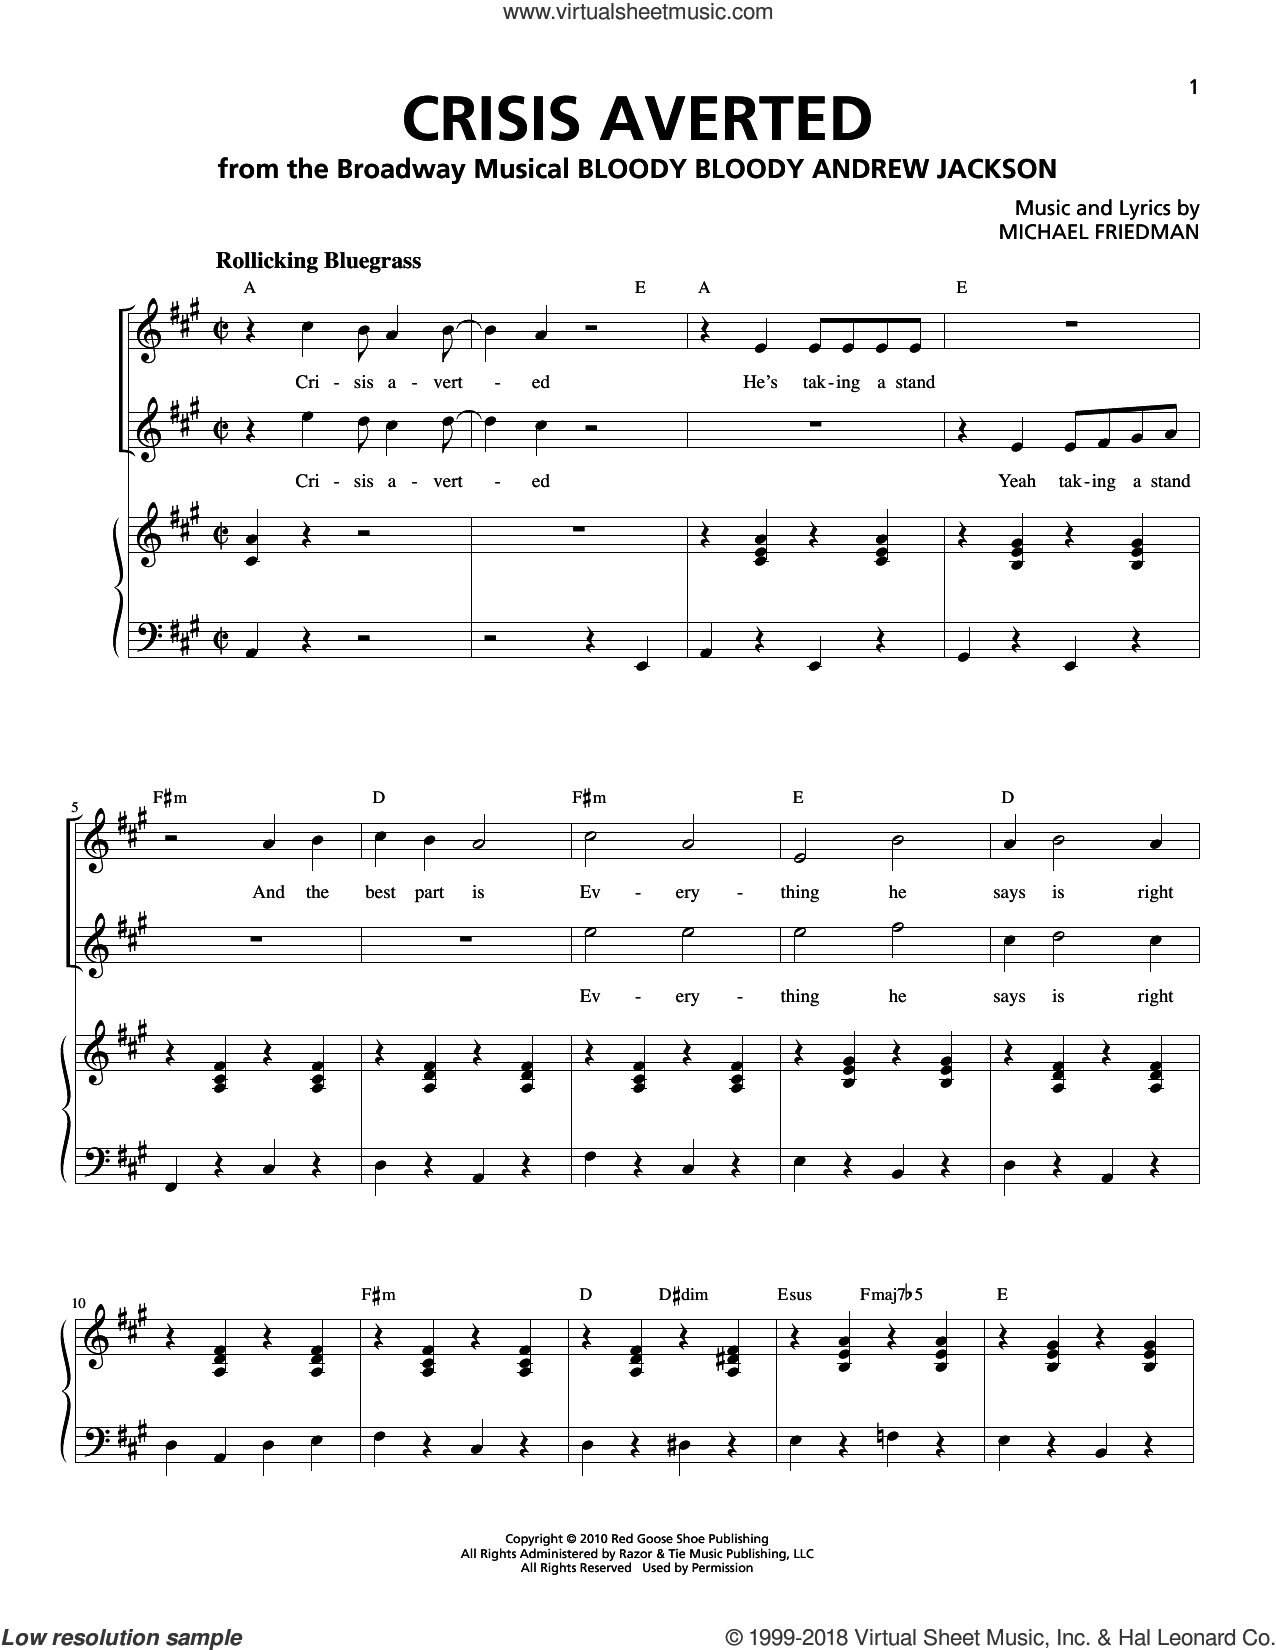 Crisis Averted sheet music for voice and piano by Michael Friedman